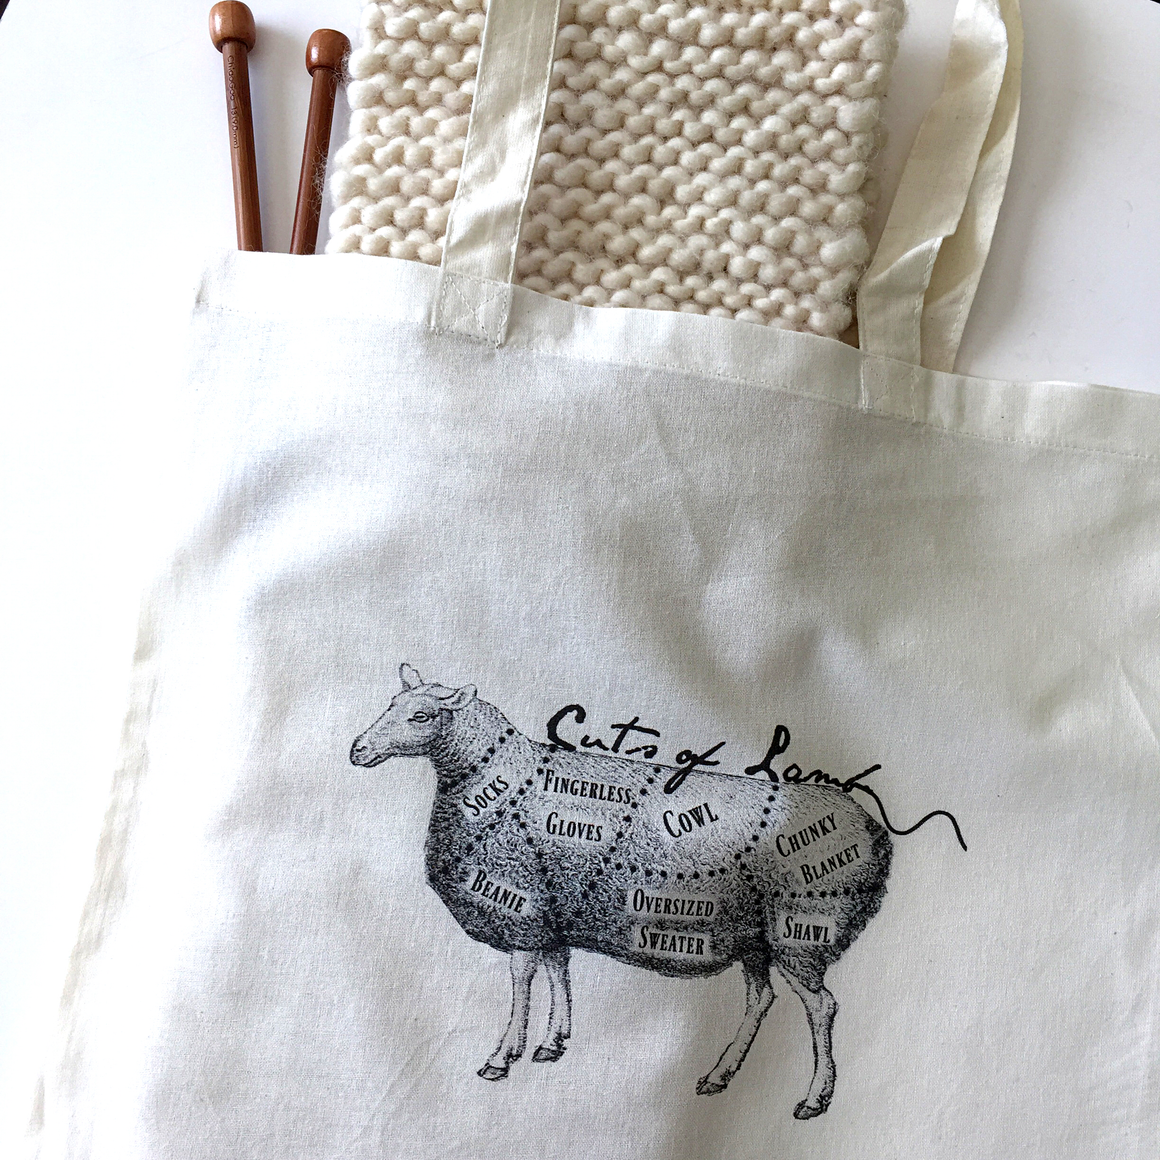 Cuts of lamb project bag